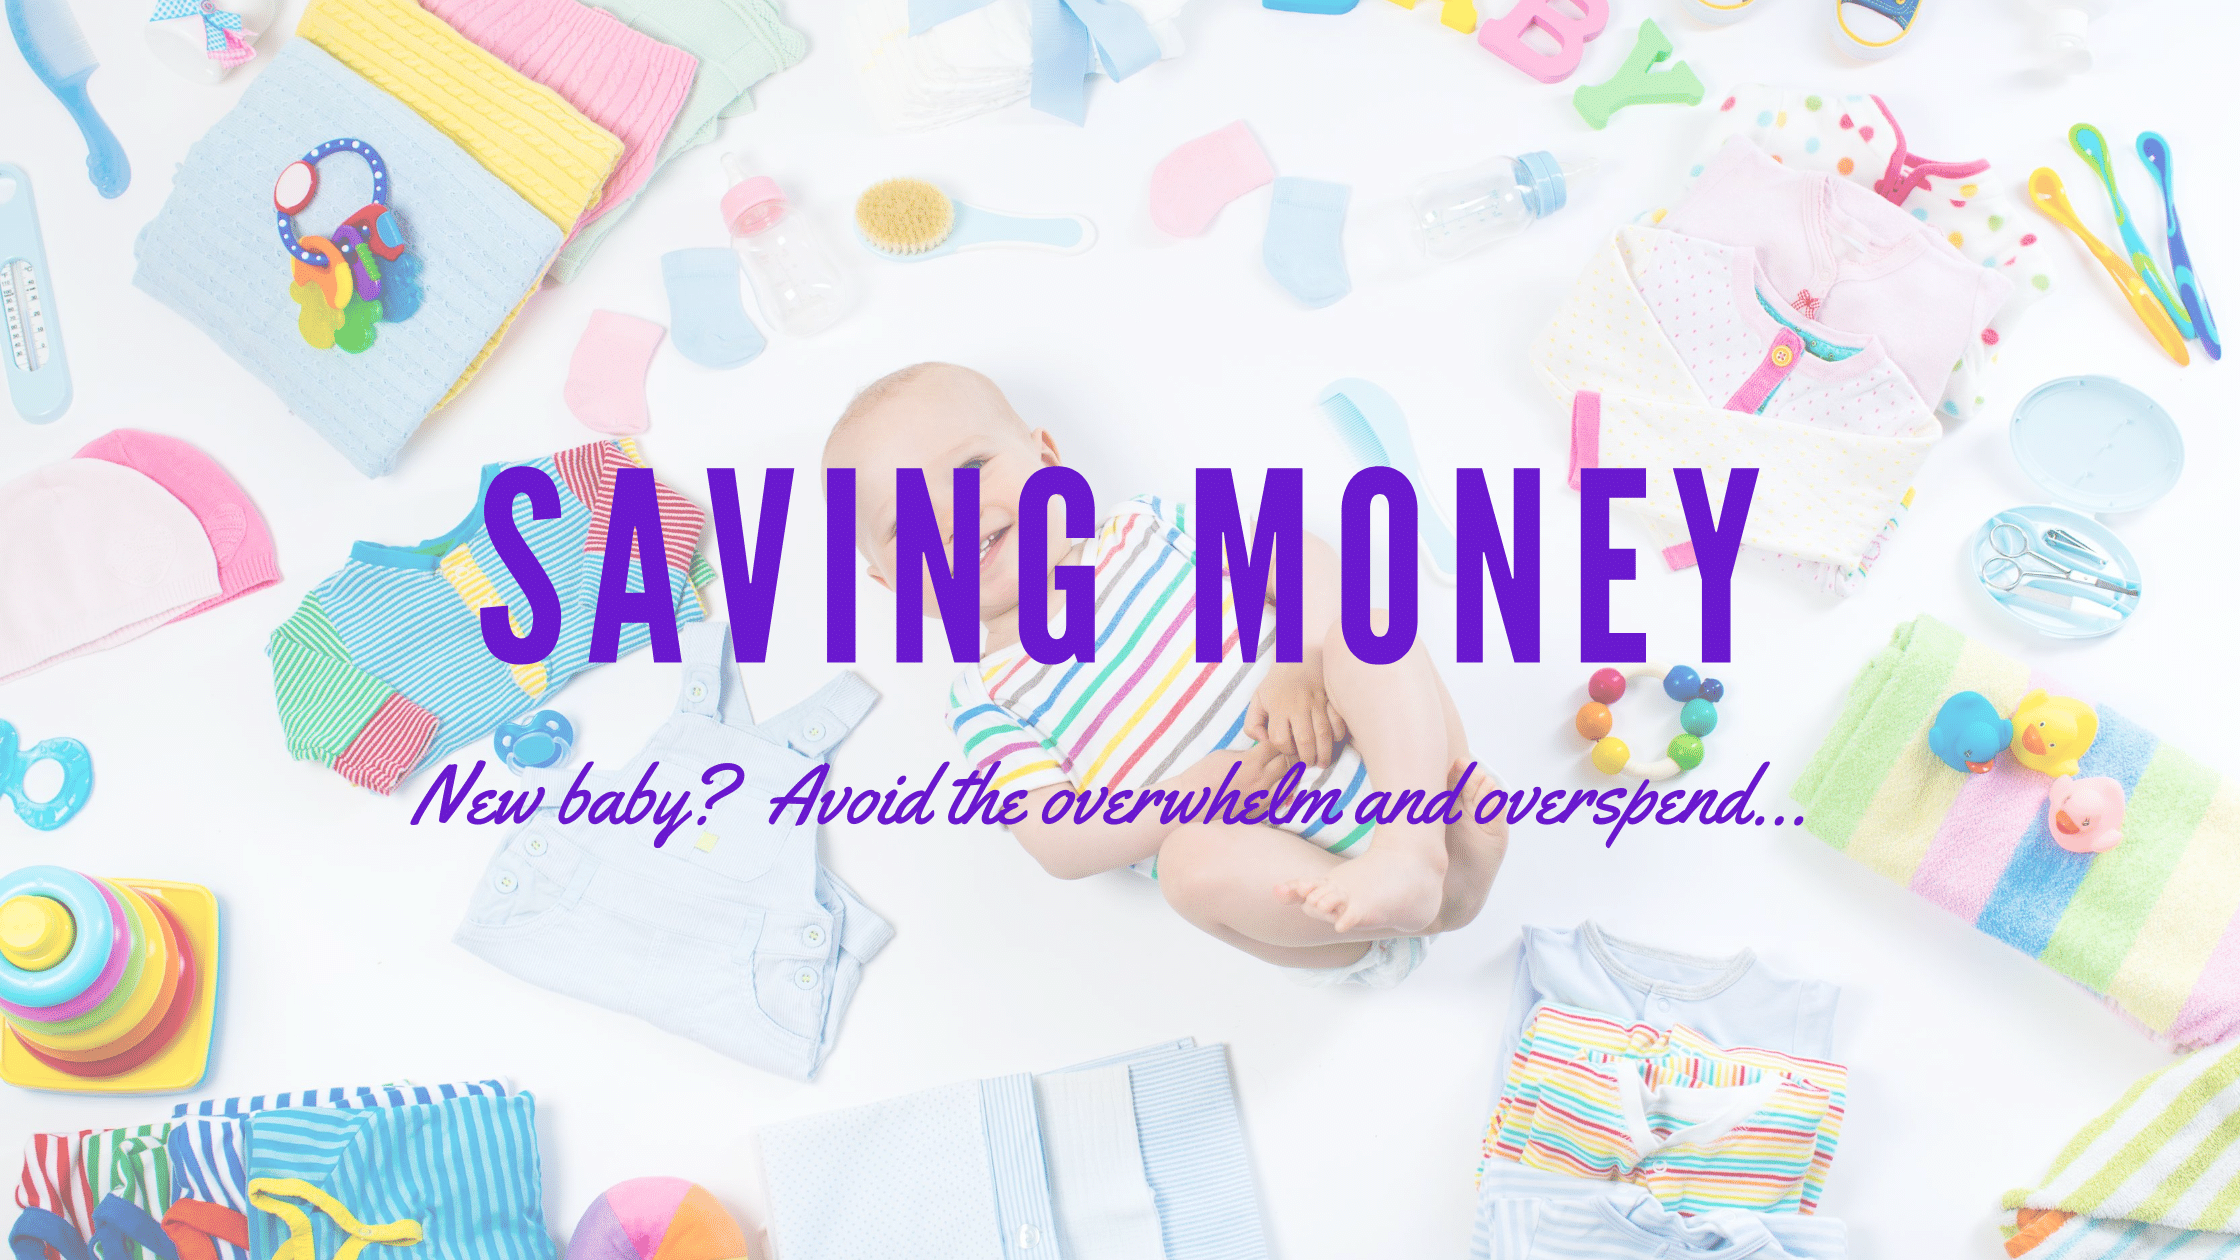 Don't break the bank for your new baby